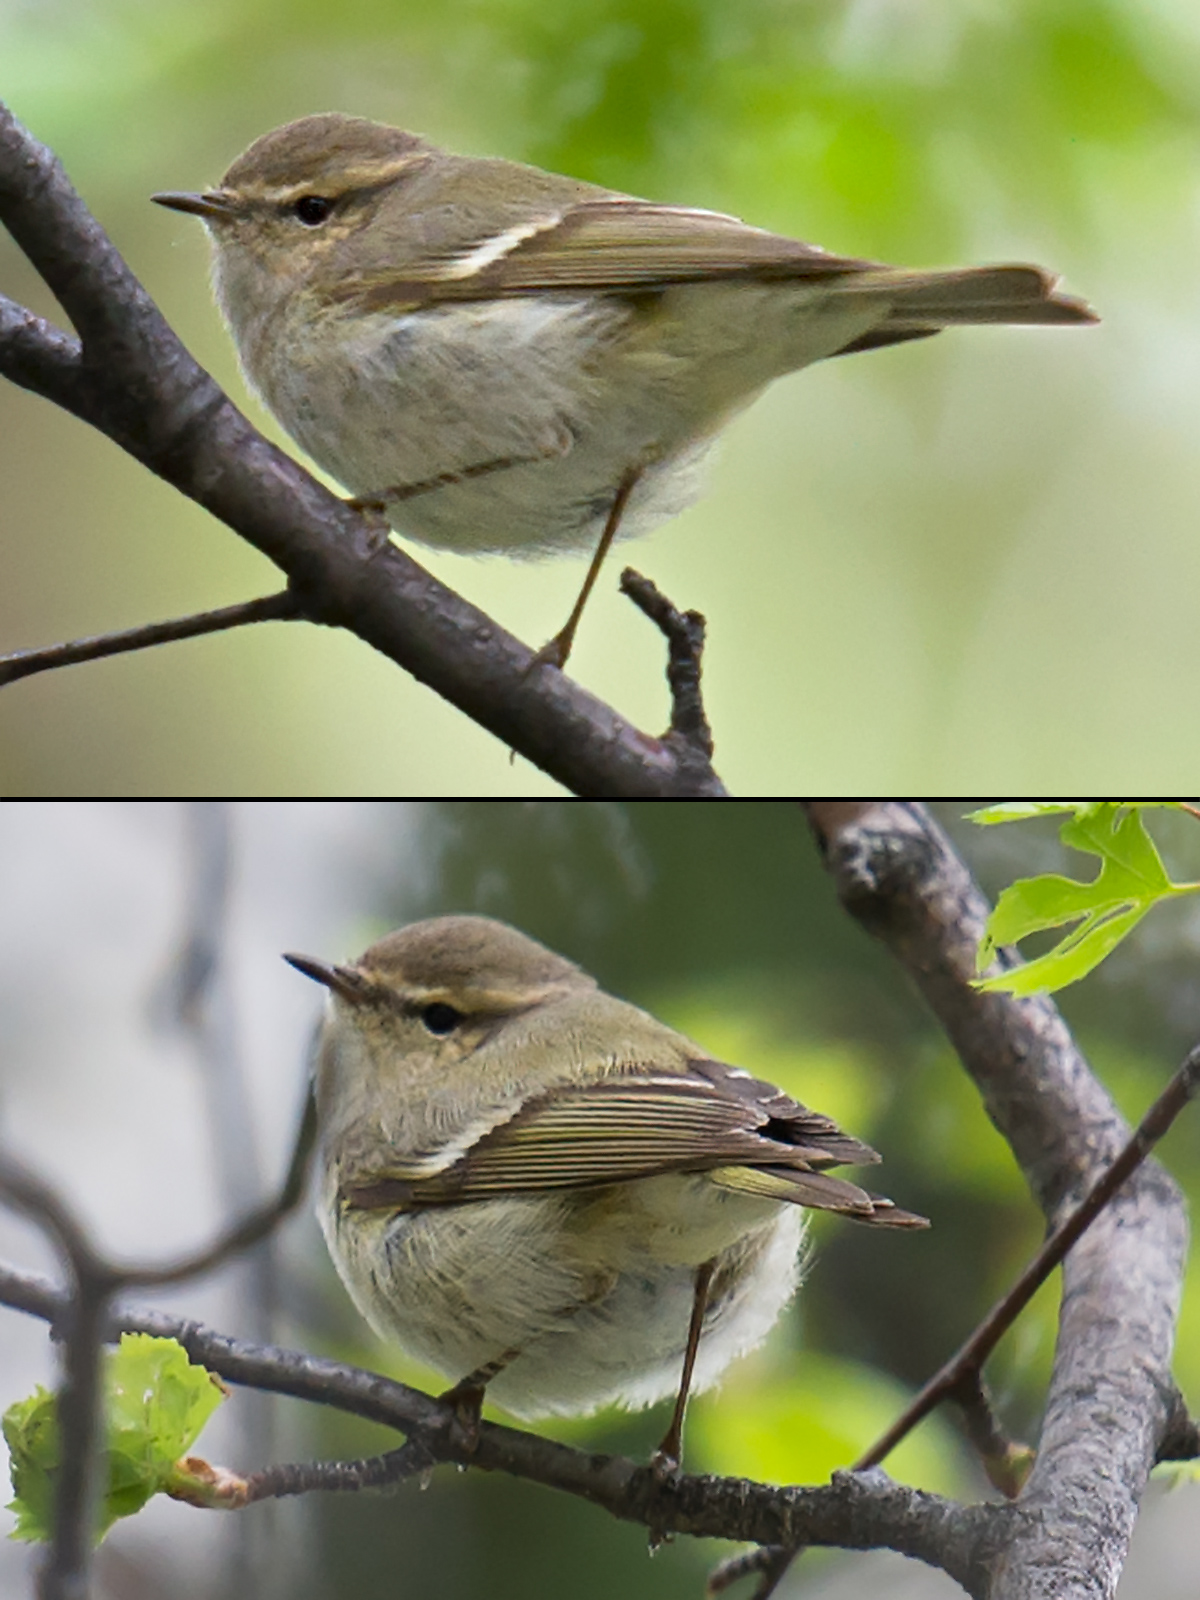 Hume's Leaf Warbler, Altai Mountains, Xinjiang, 18 May 2012. (Craig Brelsford)